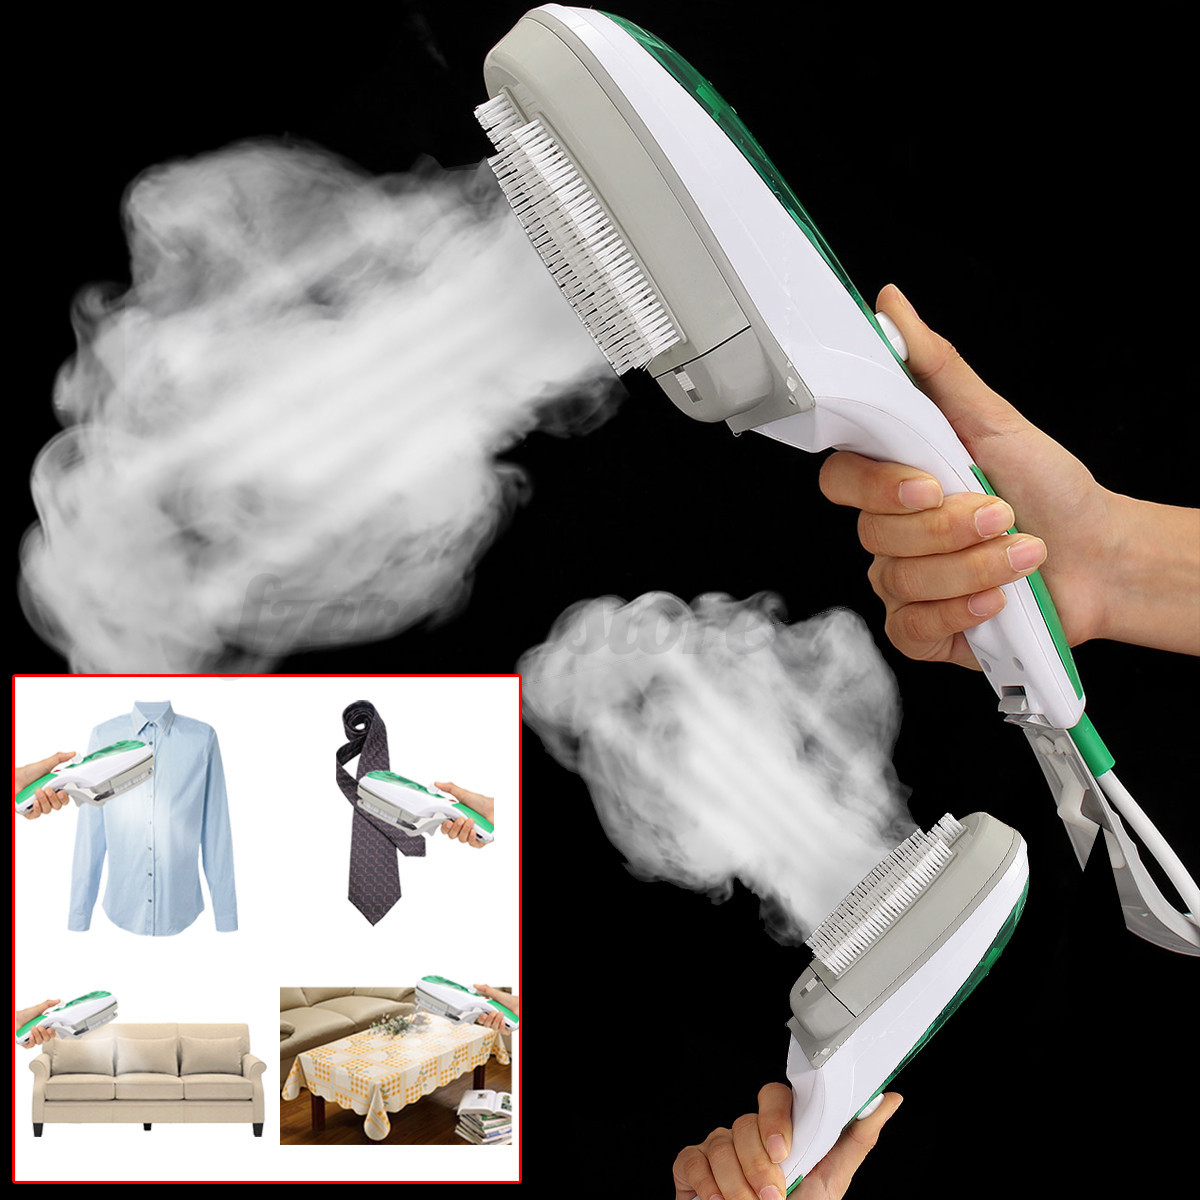 easy home handheld steam cleaner manual